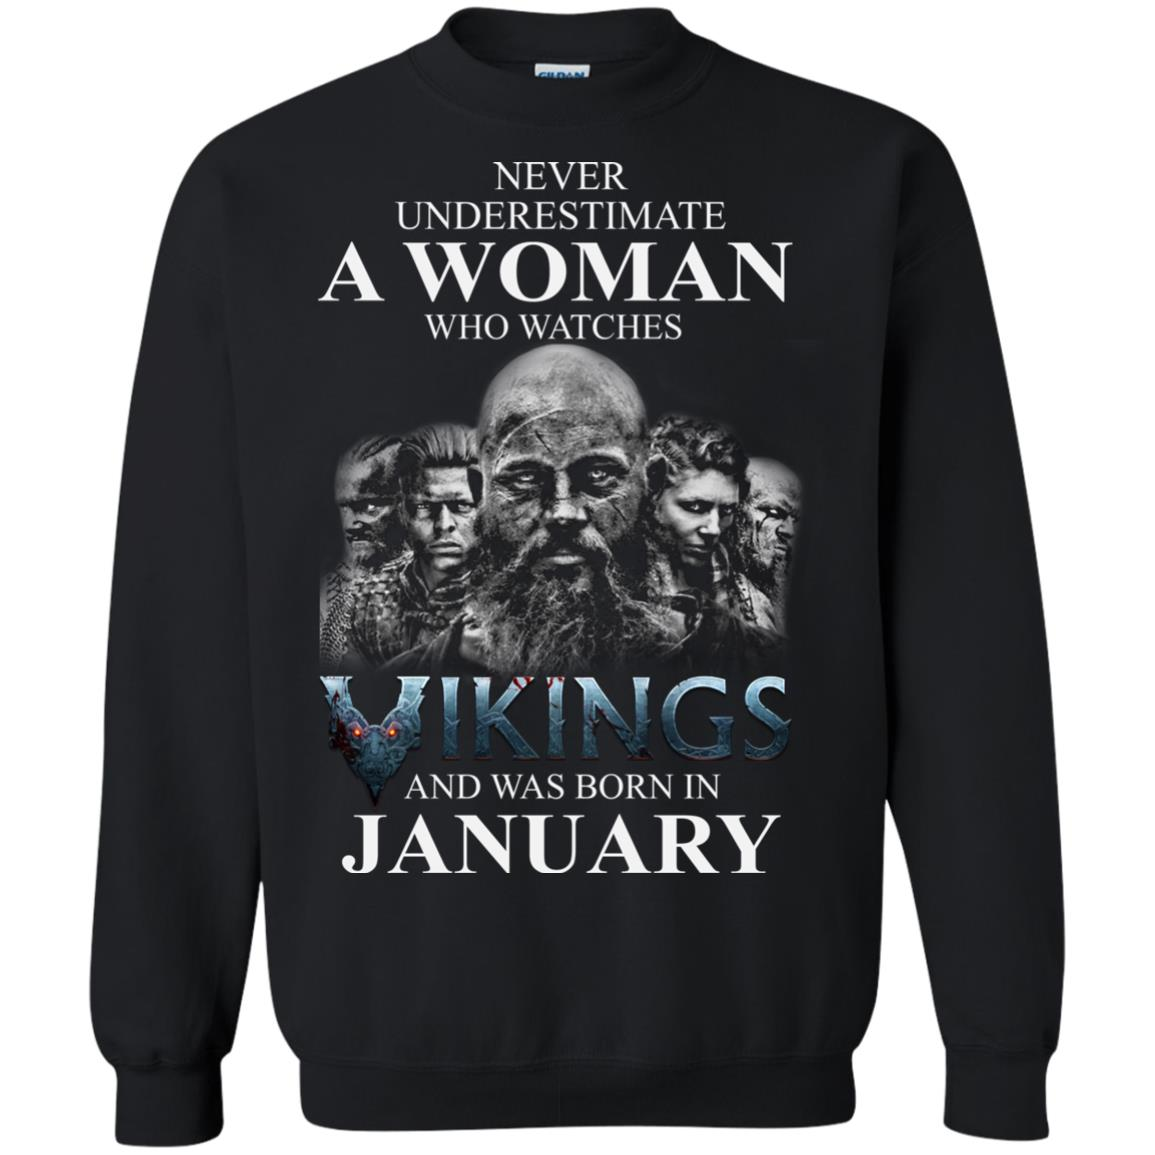 image 1357 - Never Underestimate A woman who watches Vikings and was born in January shirt